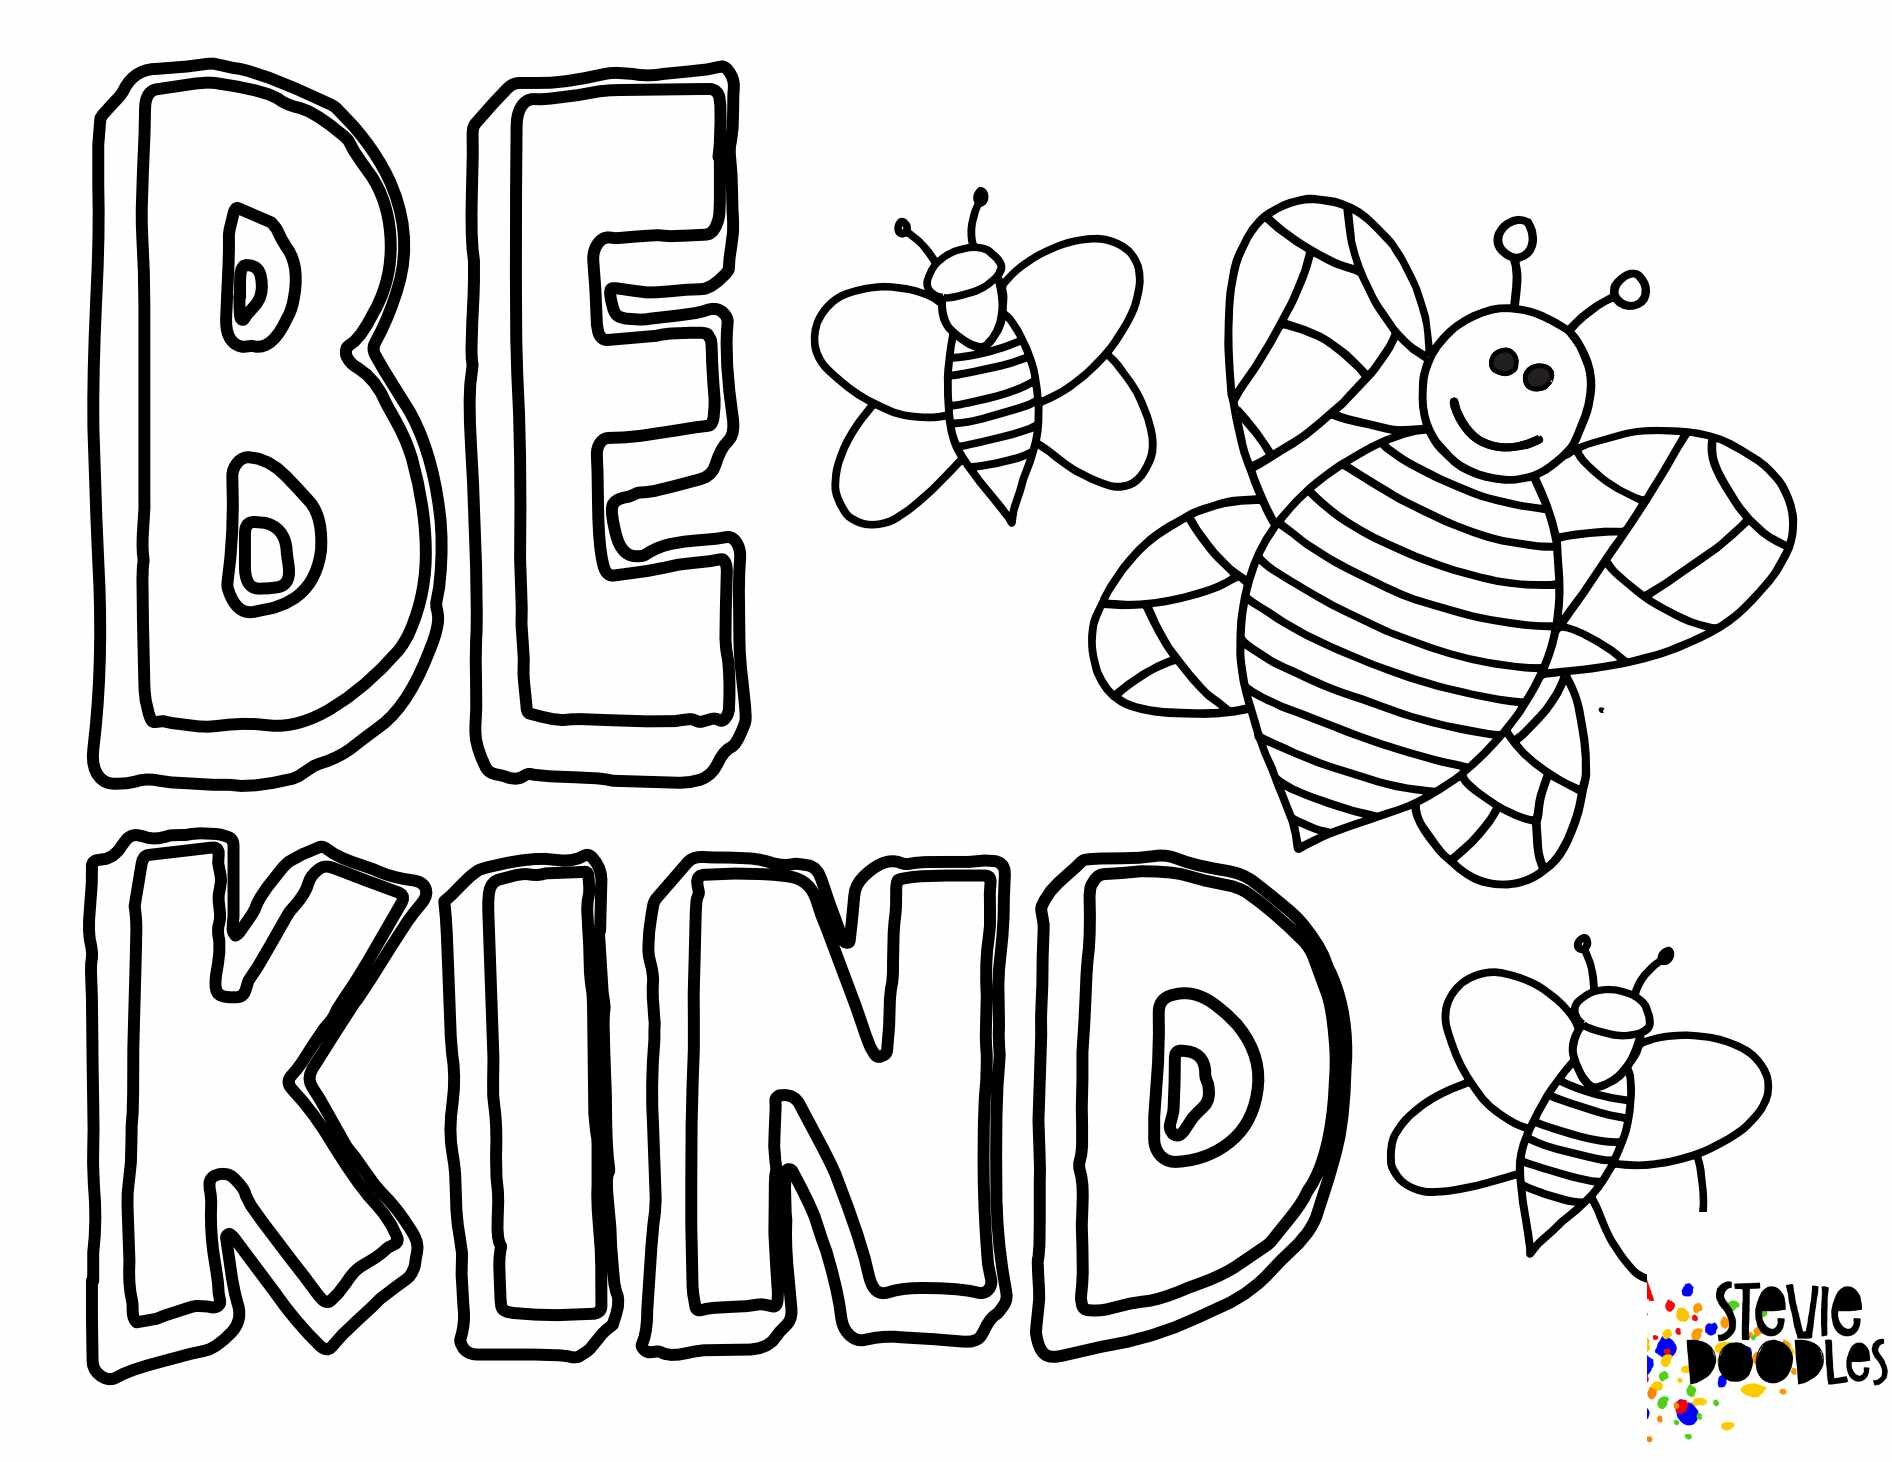 Free BEE Kind Coloring Pages — Stevie Doodles Free Printable Coloring Pages